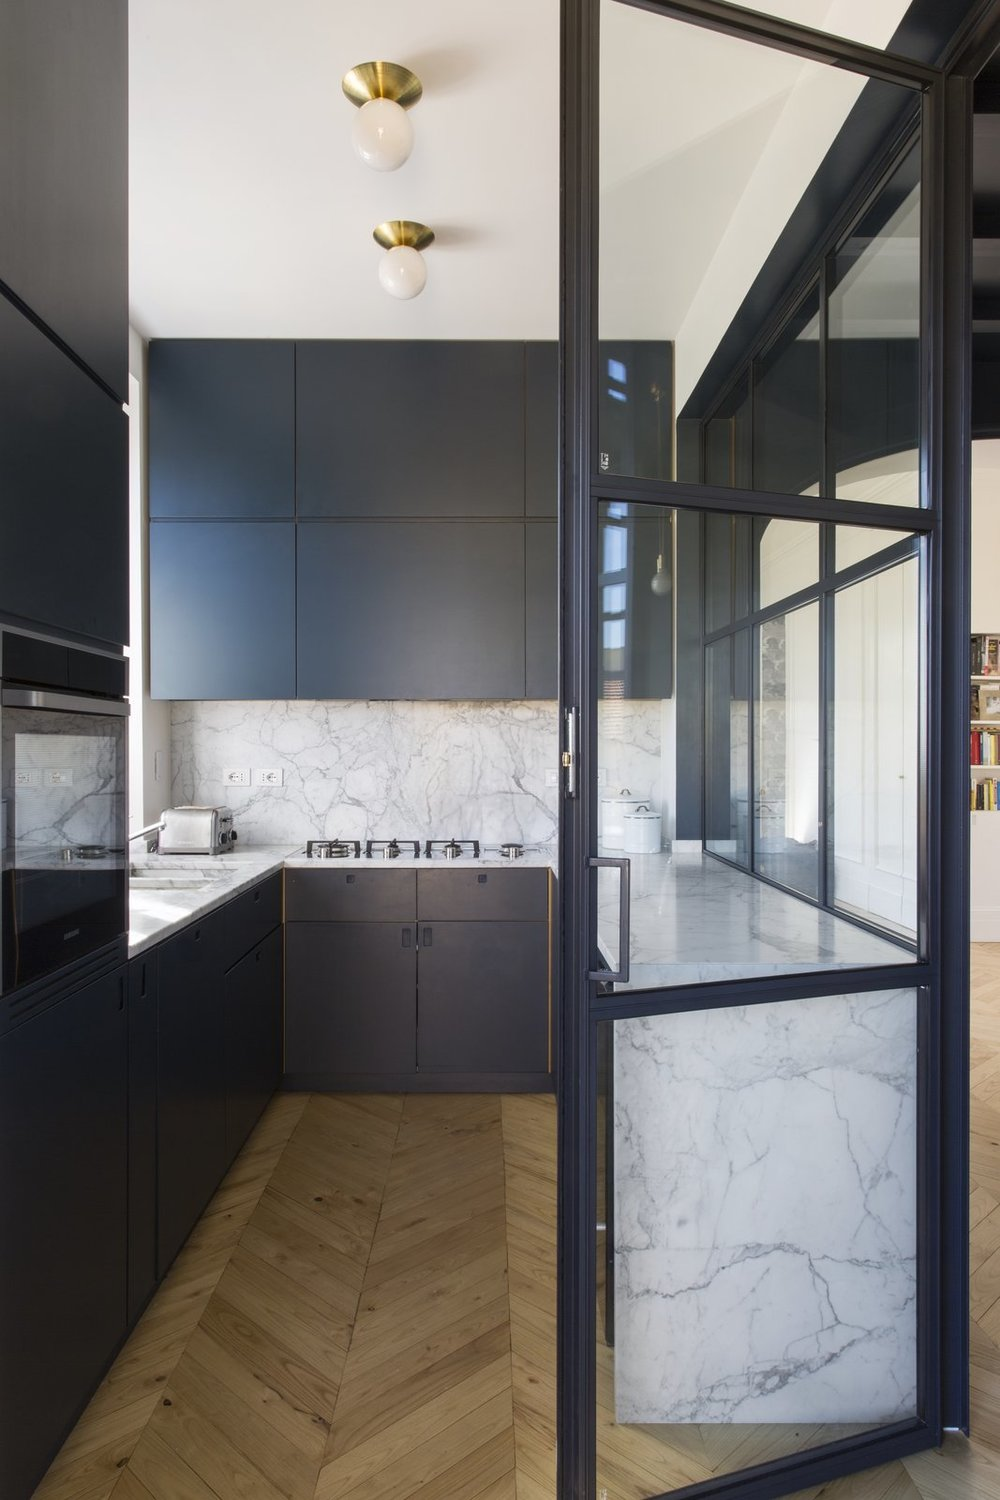 Crittall-style windows encase the sleek and modern kitchen. In this room, deep veined marble has been used for the counters and backsplash.  Photo Courtesy of Serena Eller